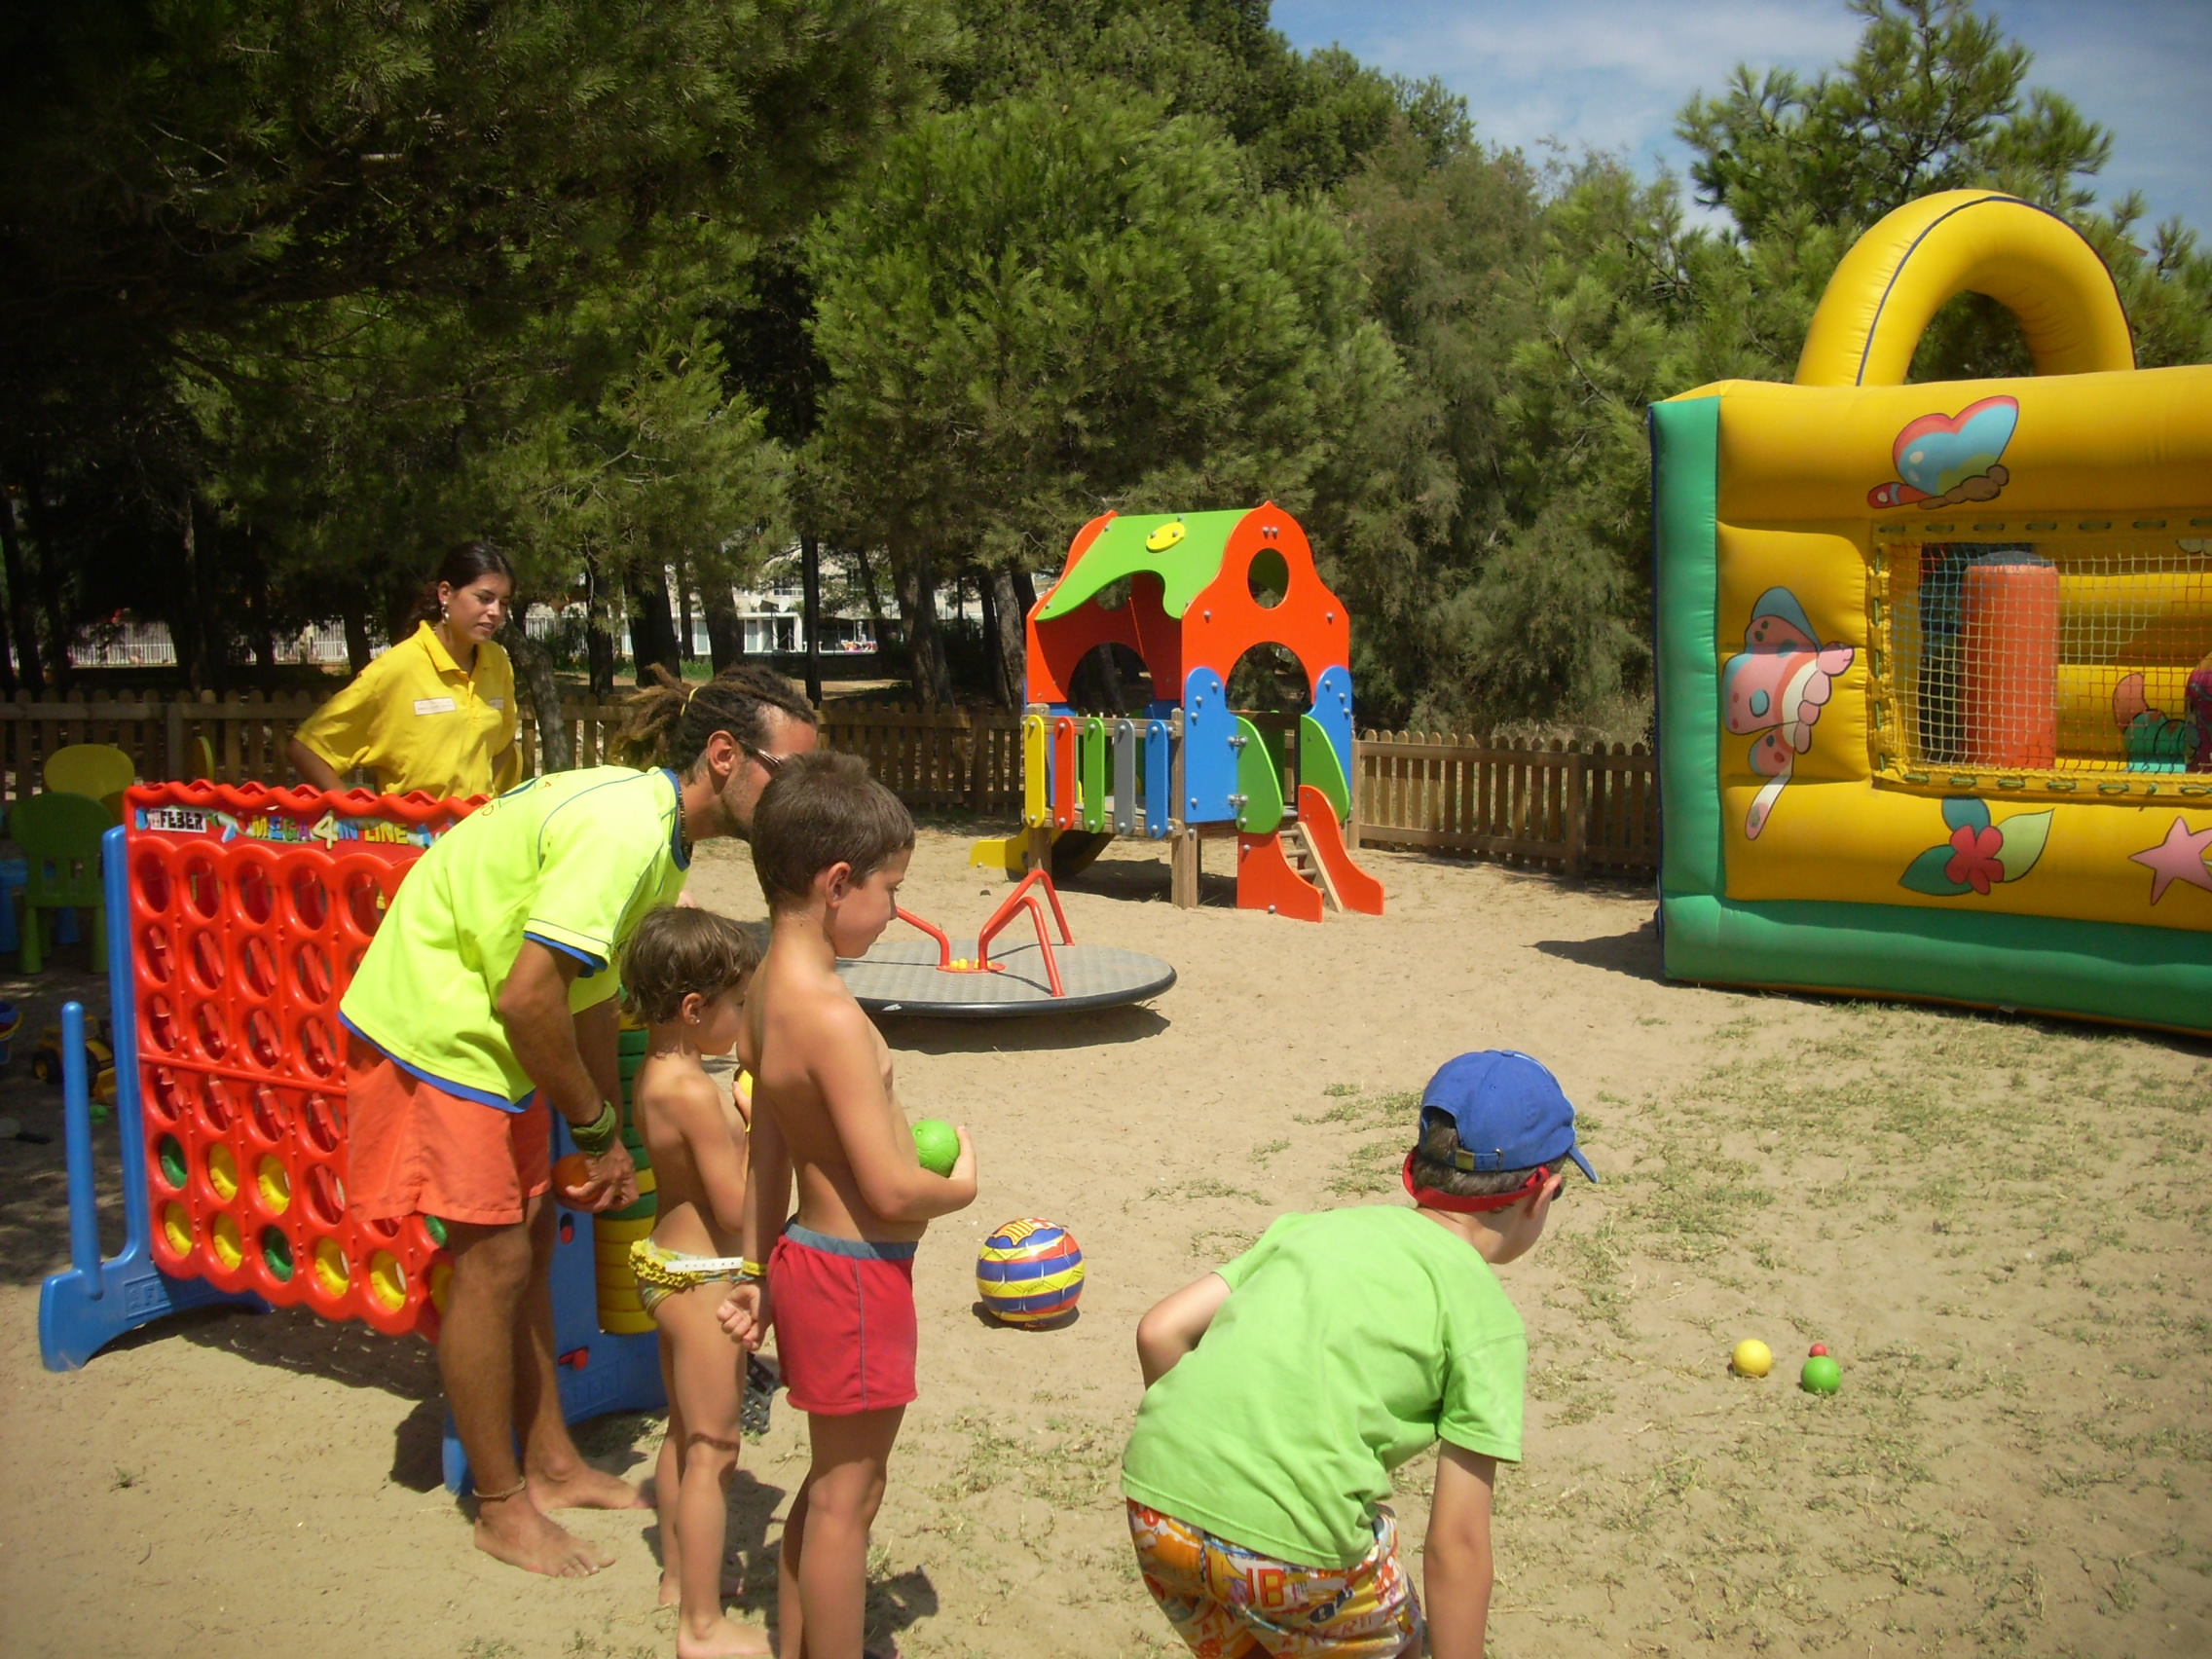 Juegos y sonrisas con los monitores del Mini Beach Club.